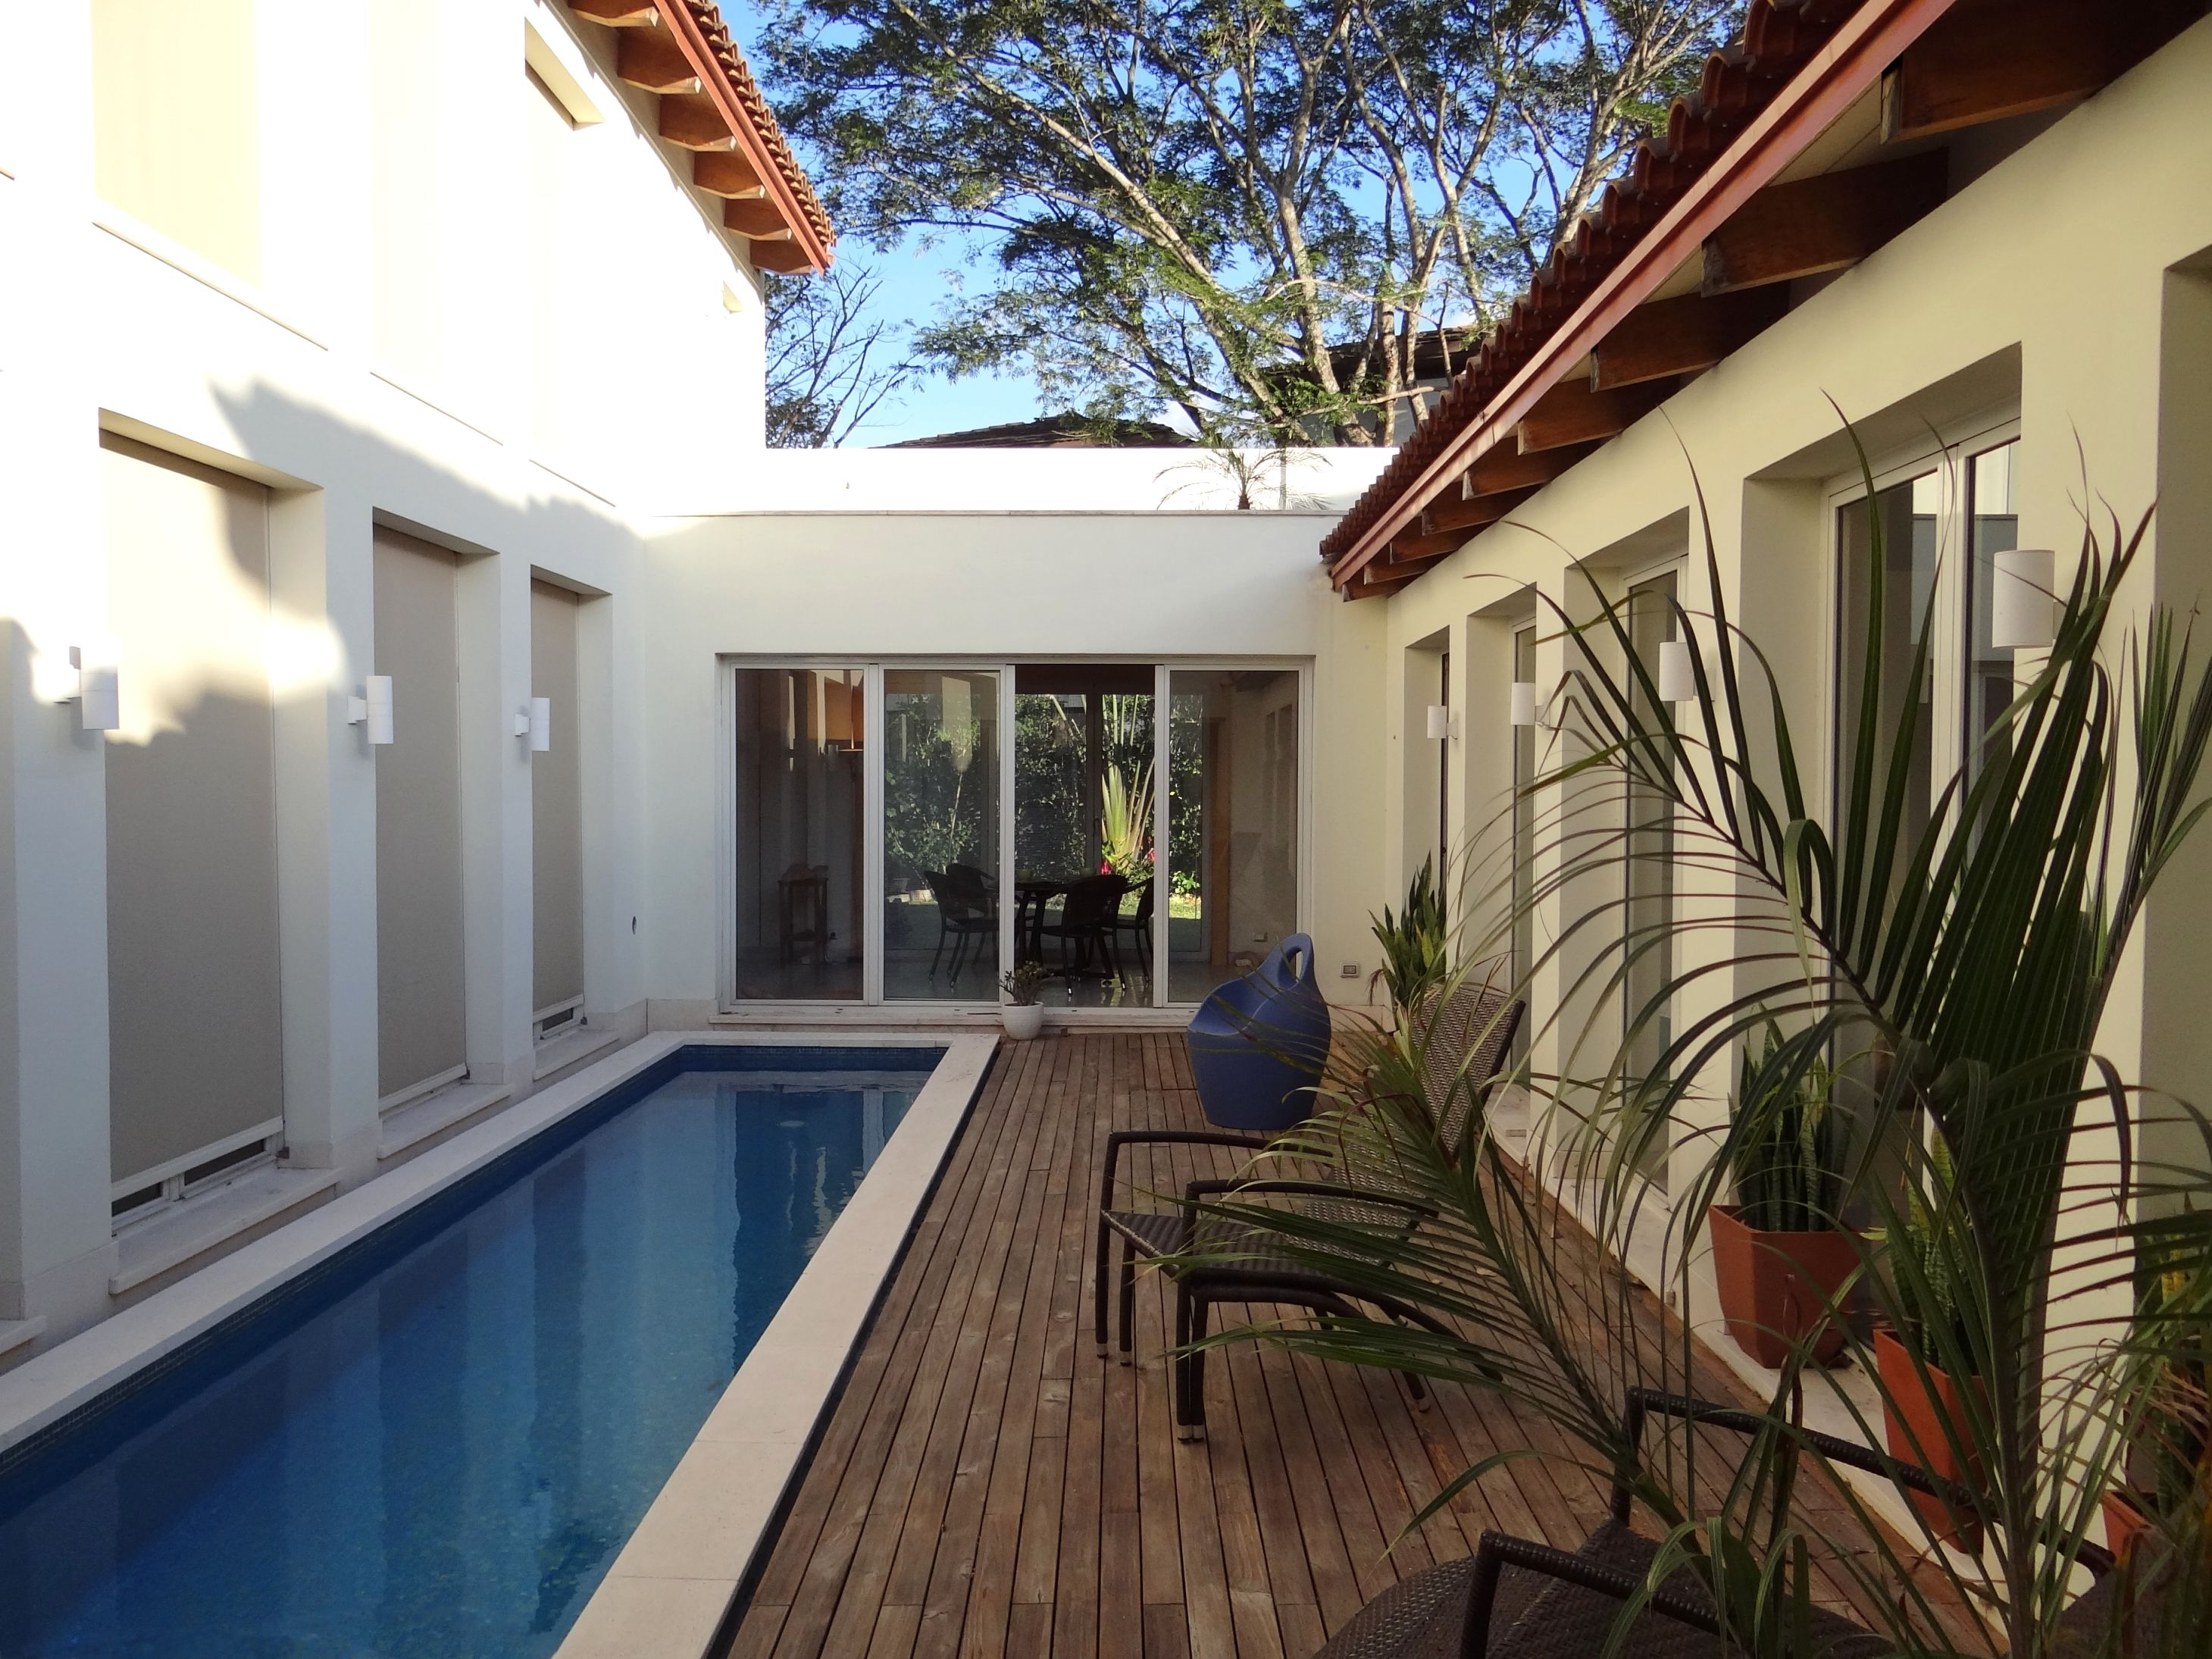 Luxury Home For Sale Santa Ana Costa Rica Bio Domus D  By Aroma Italiano Eco Design Courtyard Pool Inspiration Now For Sale